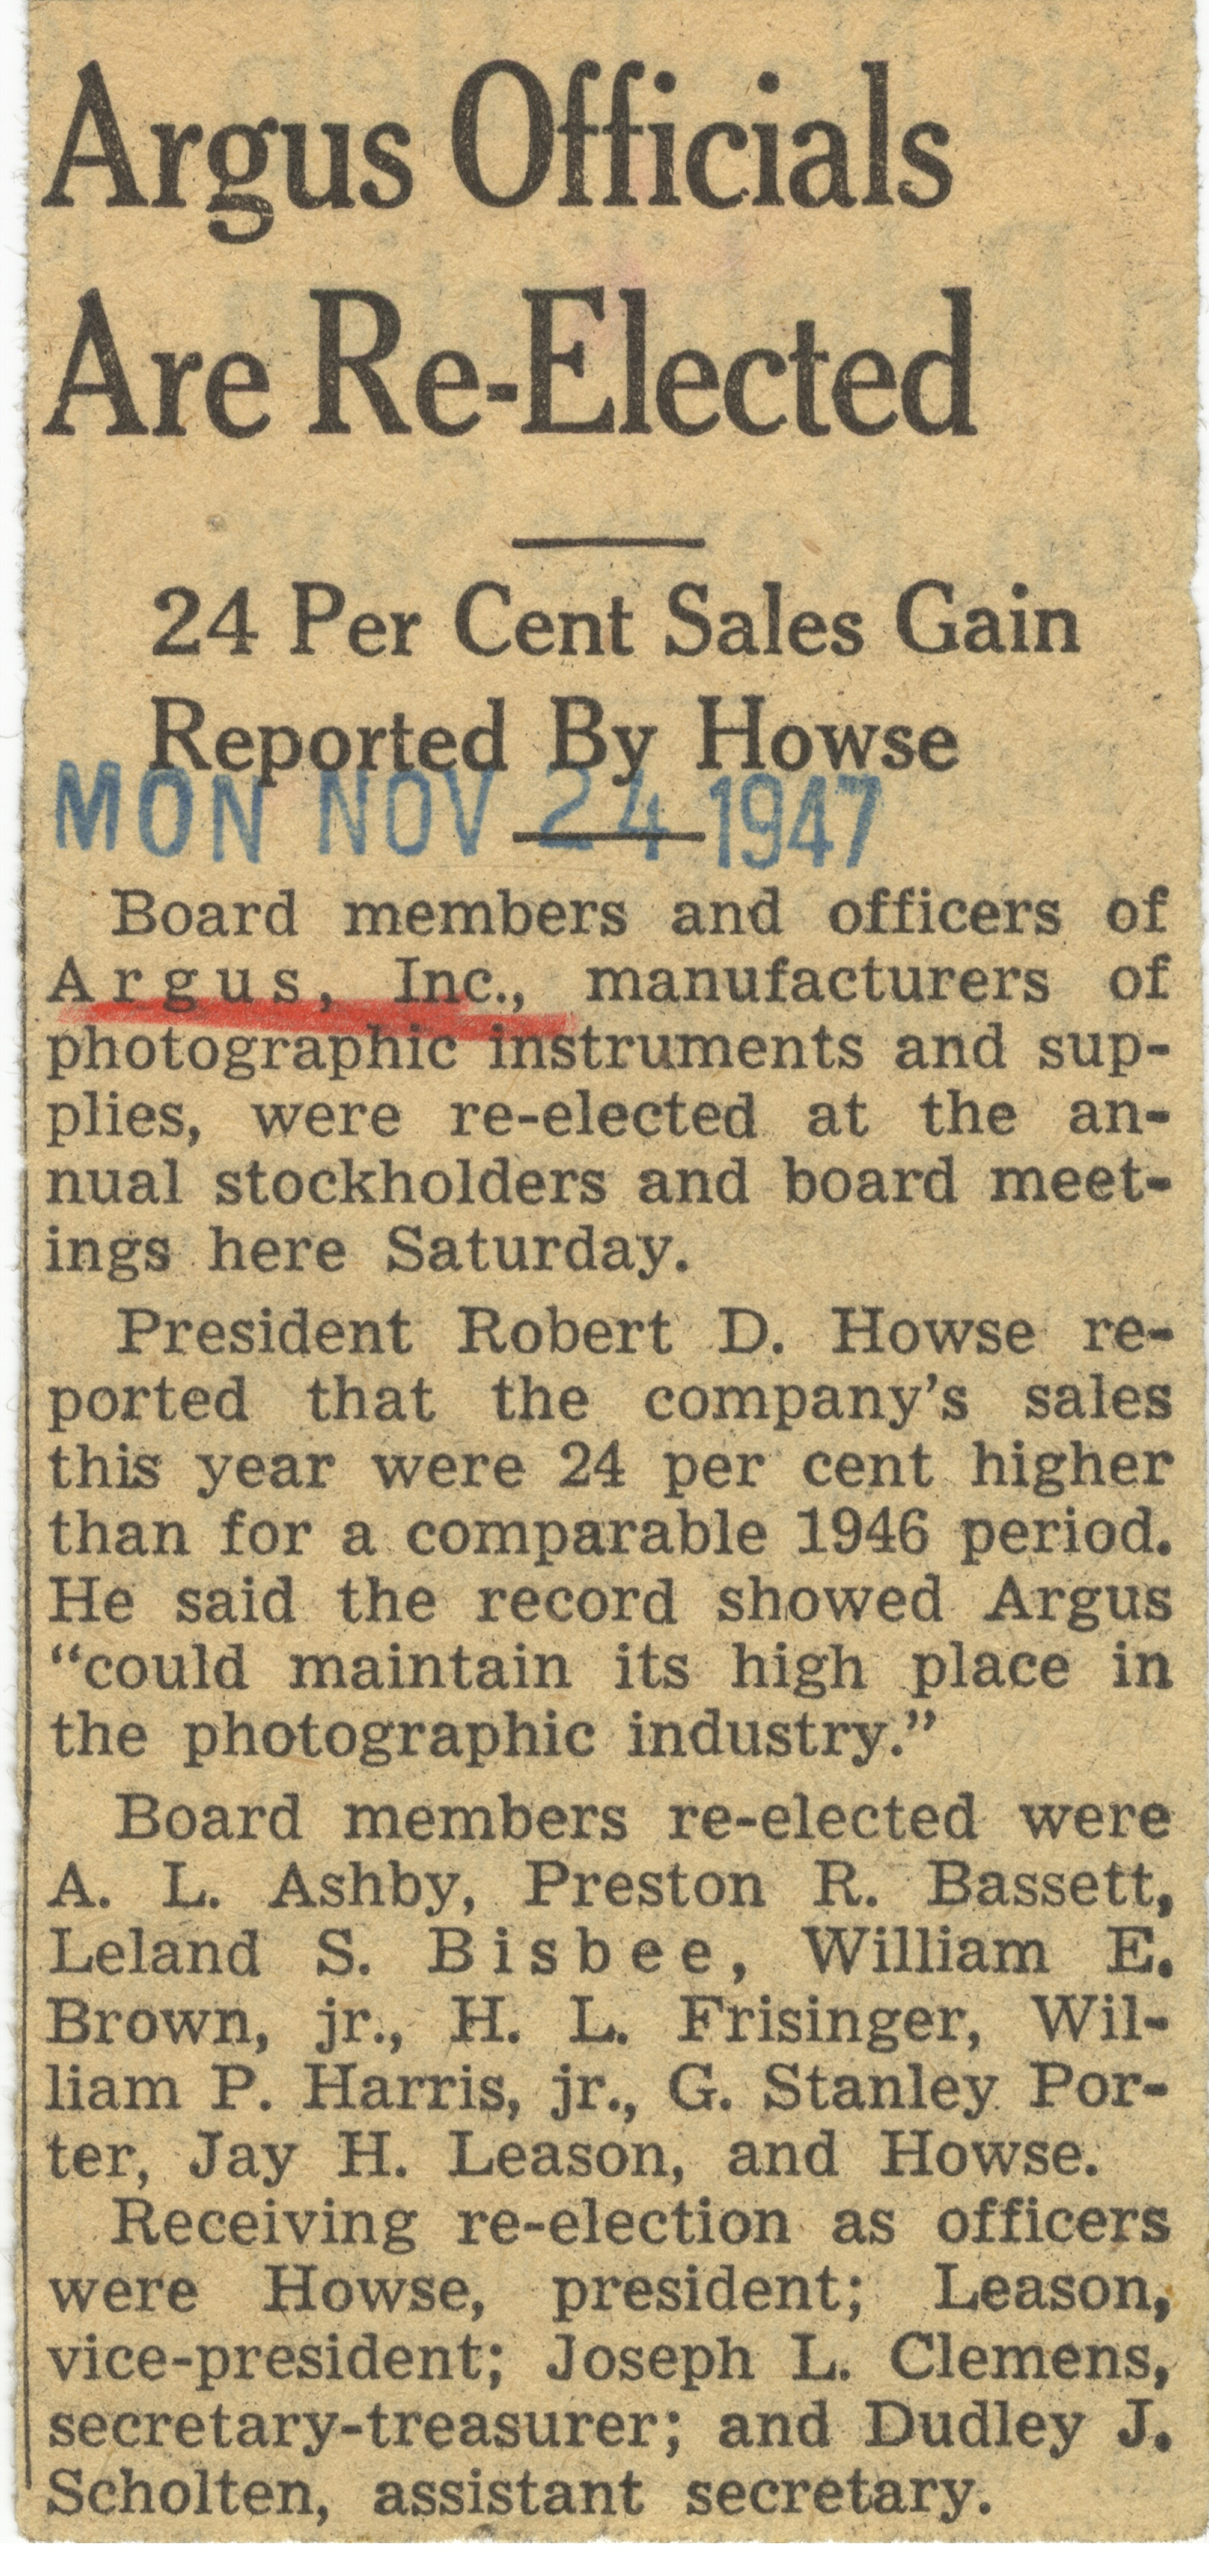 Argus Officials Are Re-Elected image